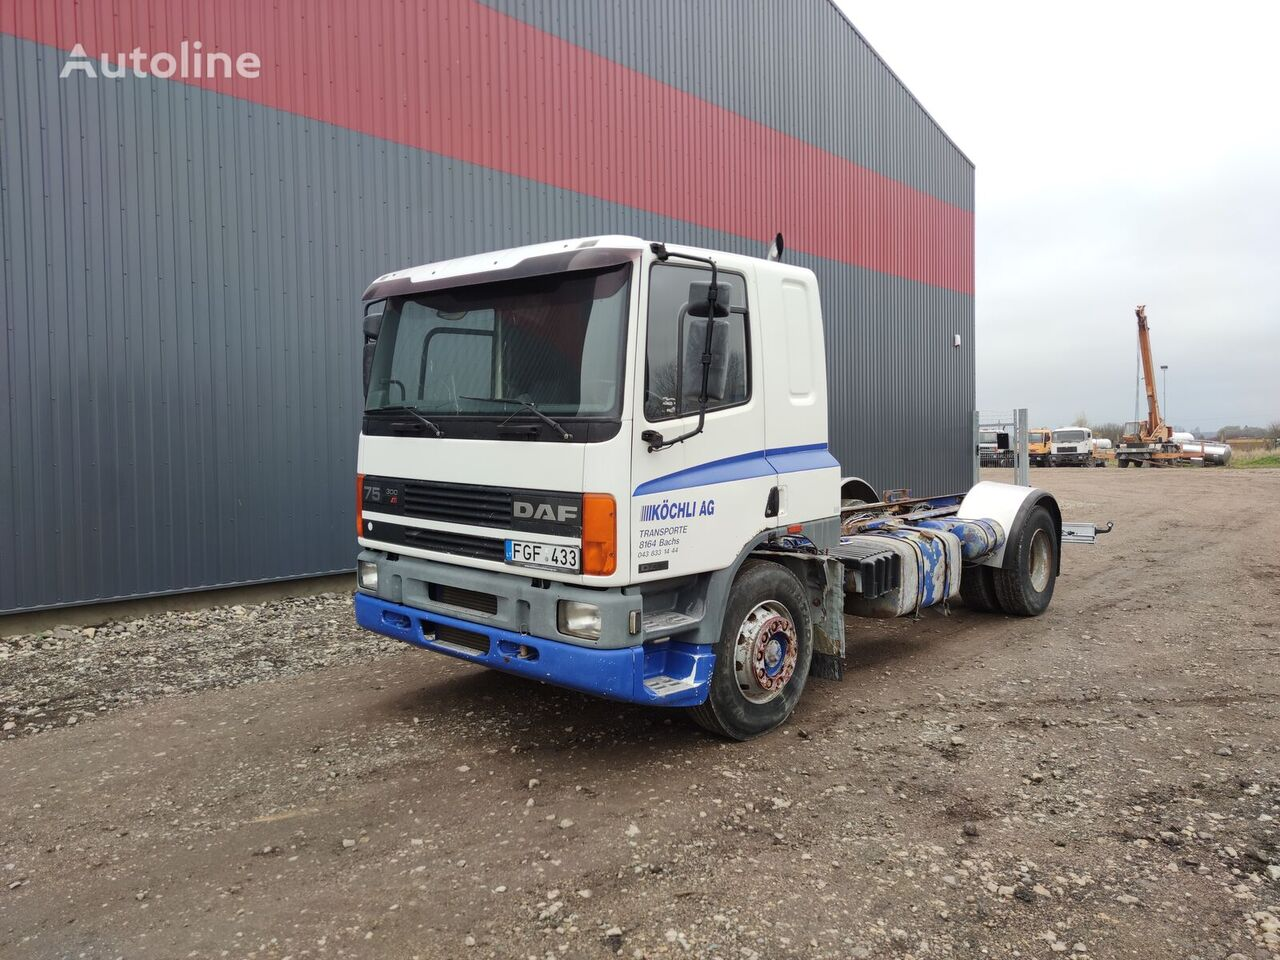 DAF 75.300 chassis chassis truck